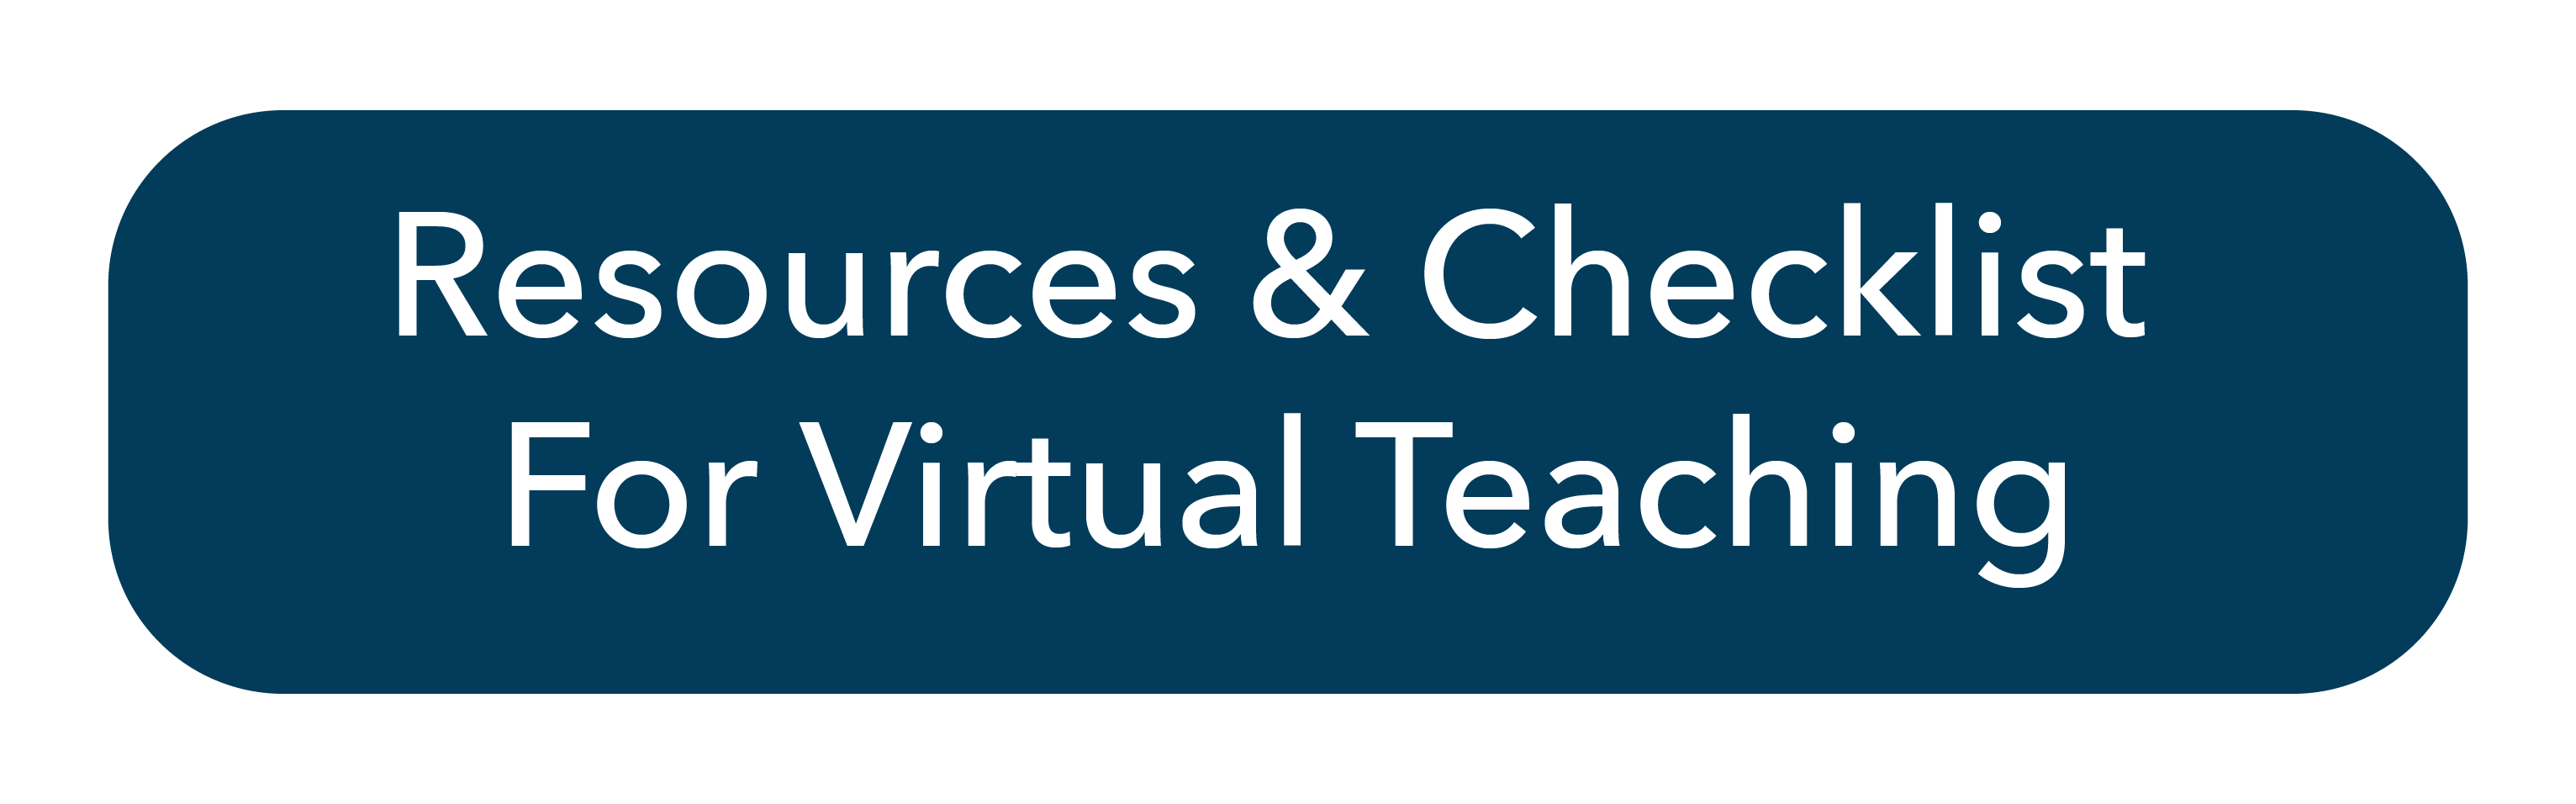 Resources and Checklist for Virtual Teaching